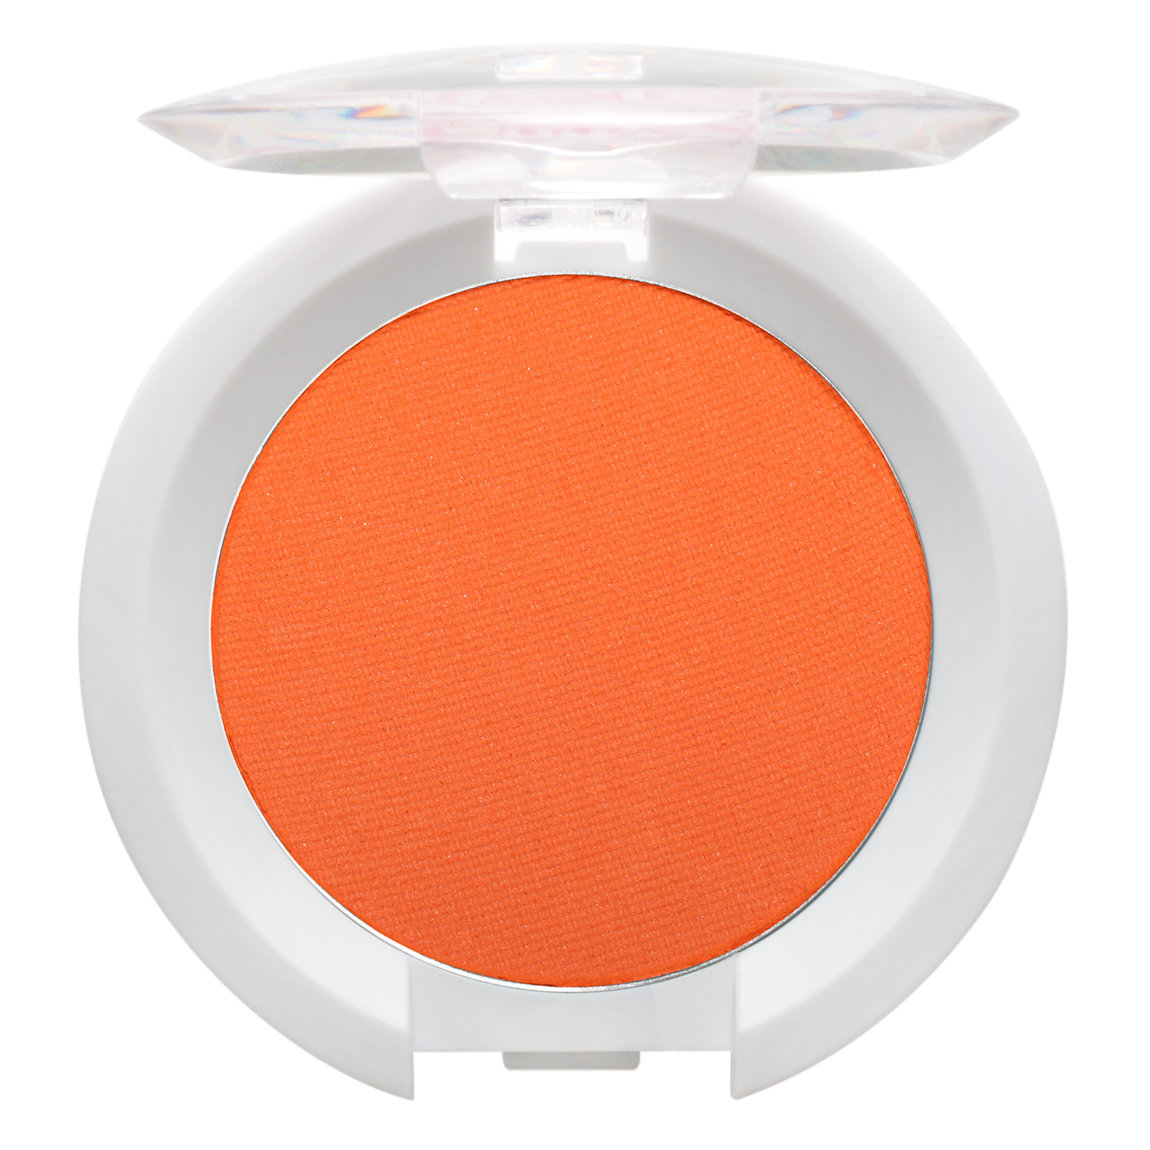 Sugarpill Cosmetics Pressed Eyeshadow Flamepoint alternative view 1 - product swatch.